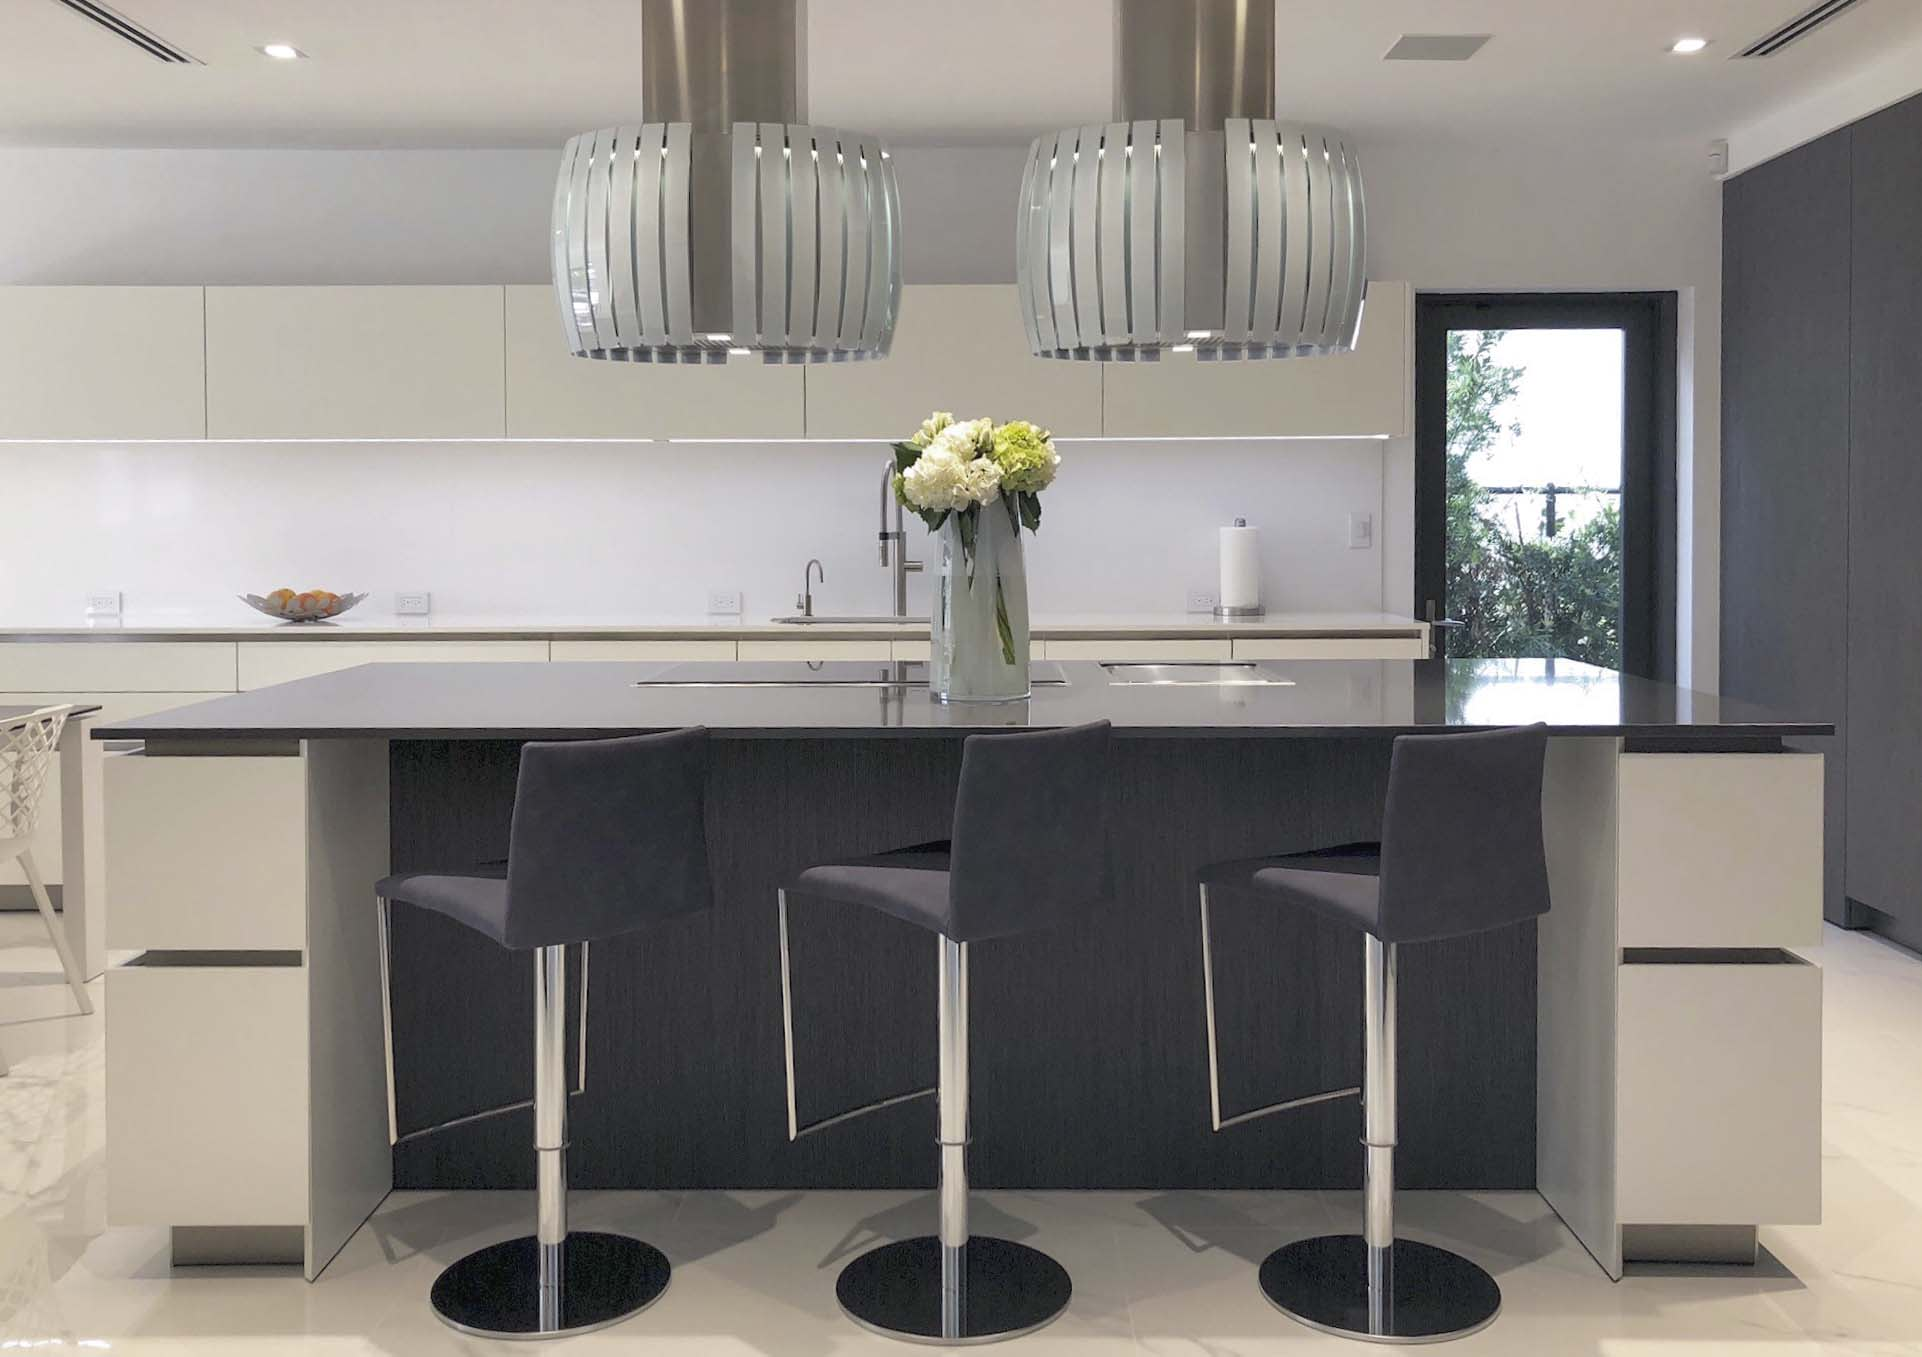 luxury german-crafted kitchen with bespoke barstools is a display kitchen in the eggersmann showroom in dcota in south florida